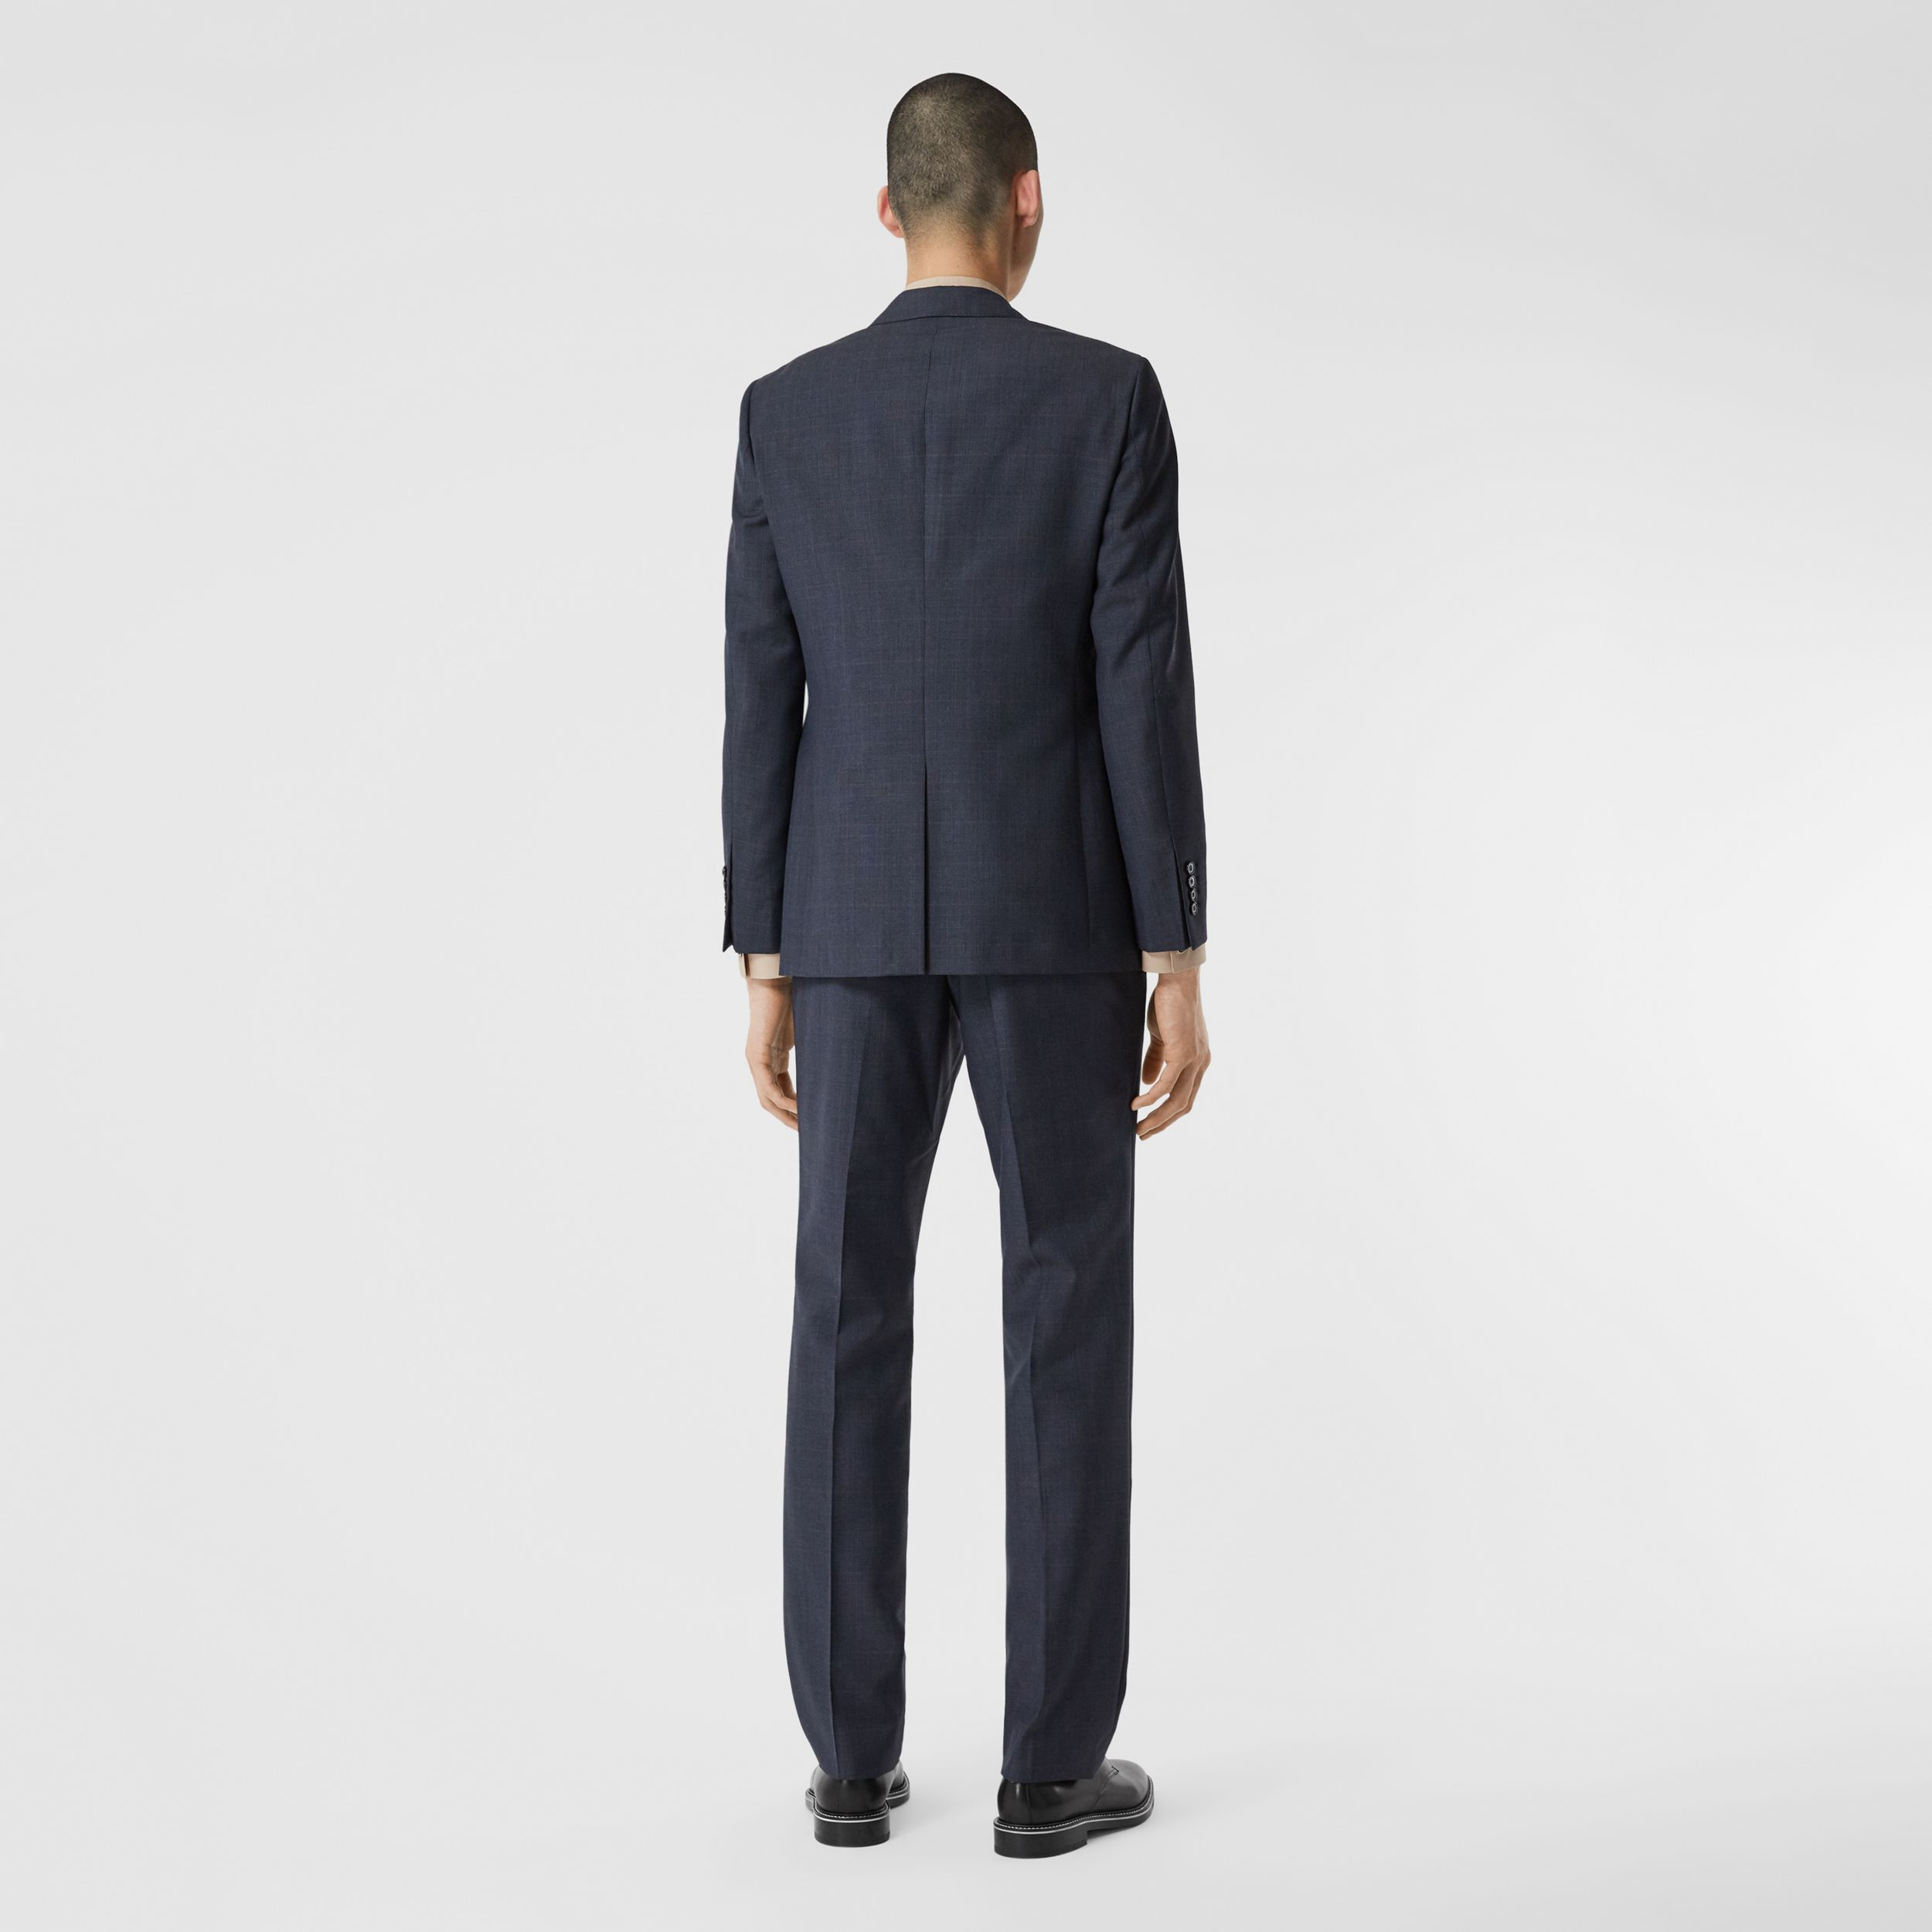 Slim Fit Prince of Wales Check Wool Suit in Carbon Blue - Men | Burberry - 3